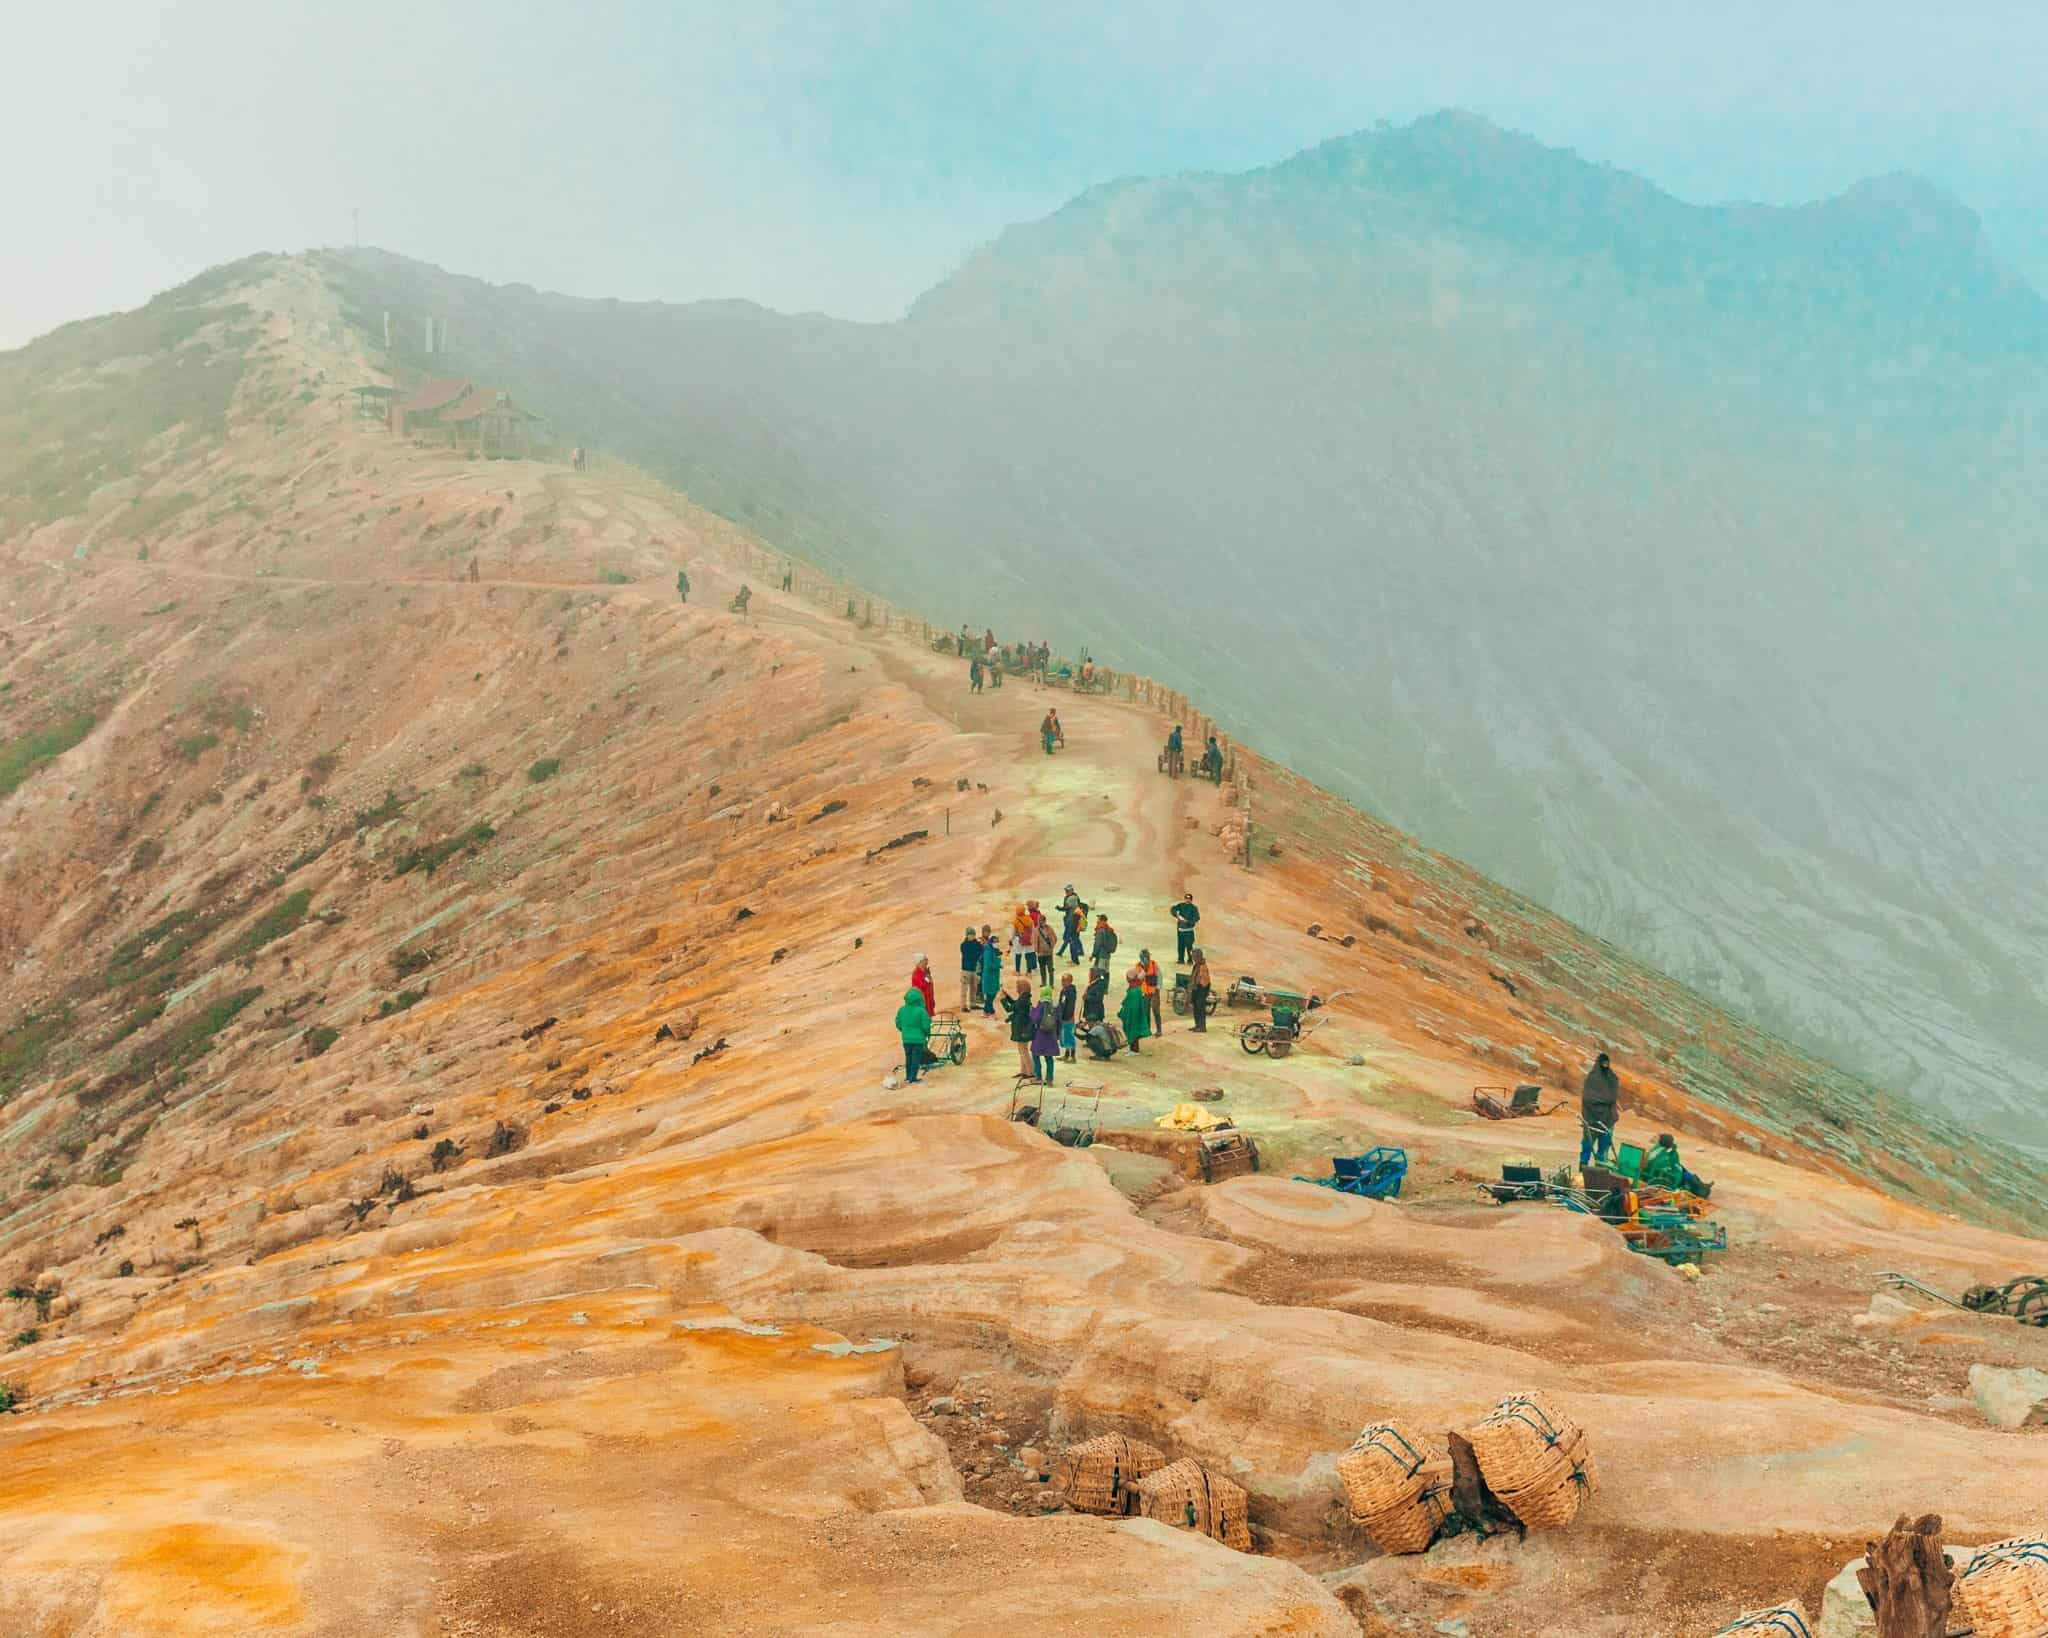 Crater Rim on Mount Ijen, East Java - The Next Trip